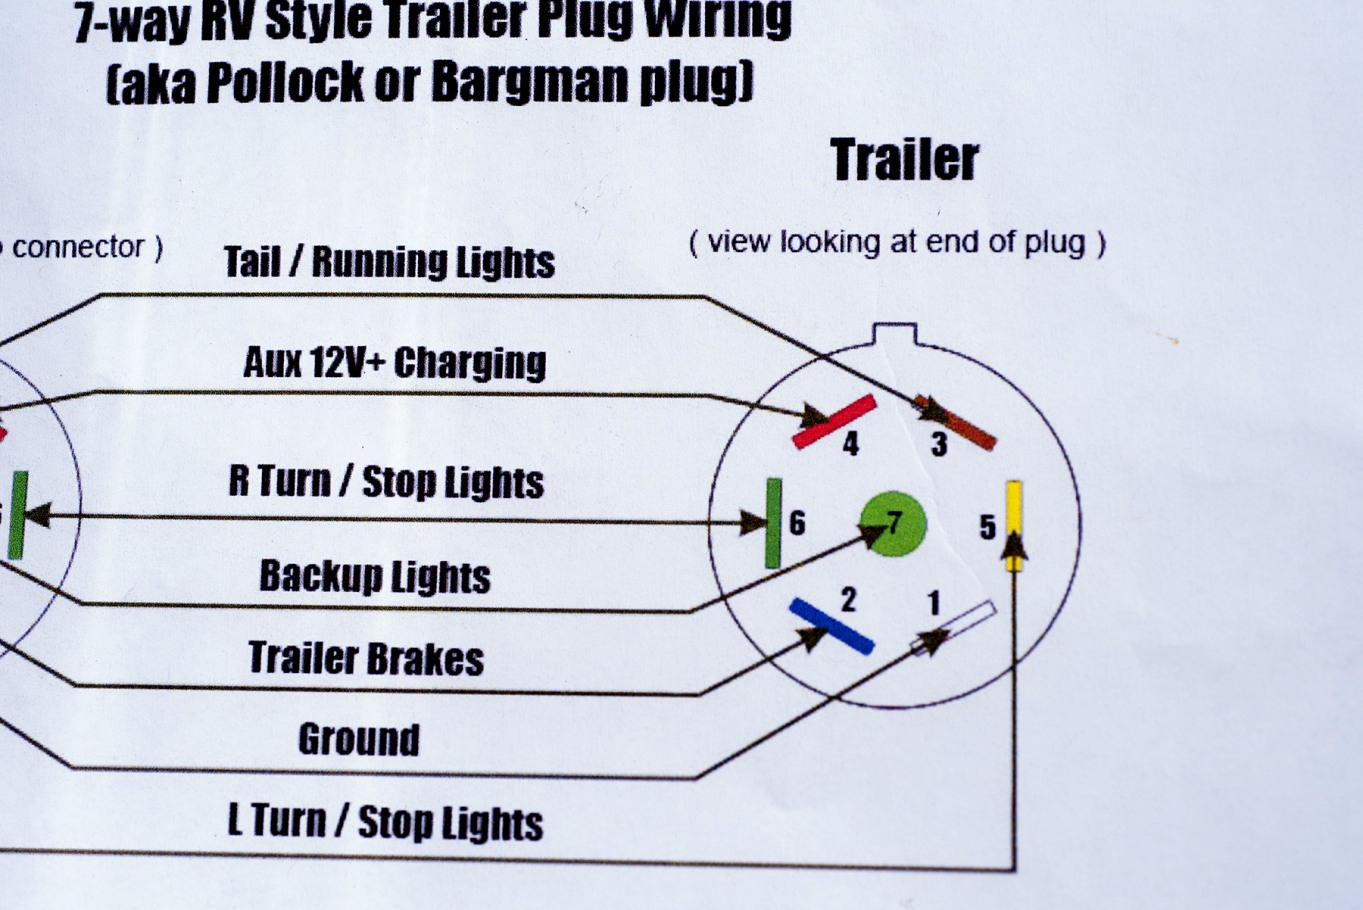 7 Round Trailer Wiring Diagram - Cg.cotsamzp.ssiew.co • on 7 round wiring harness, 7-way plug diagram, 7 round trailer wire, 7 pin trailer diagram, 7 pronge trailer connector diagram,